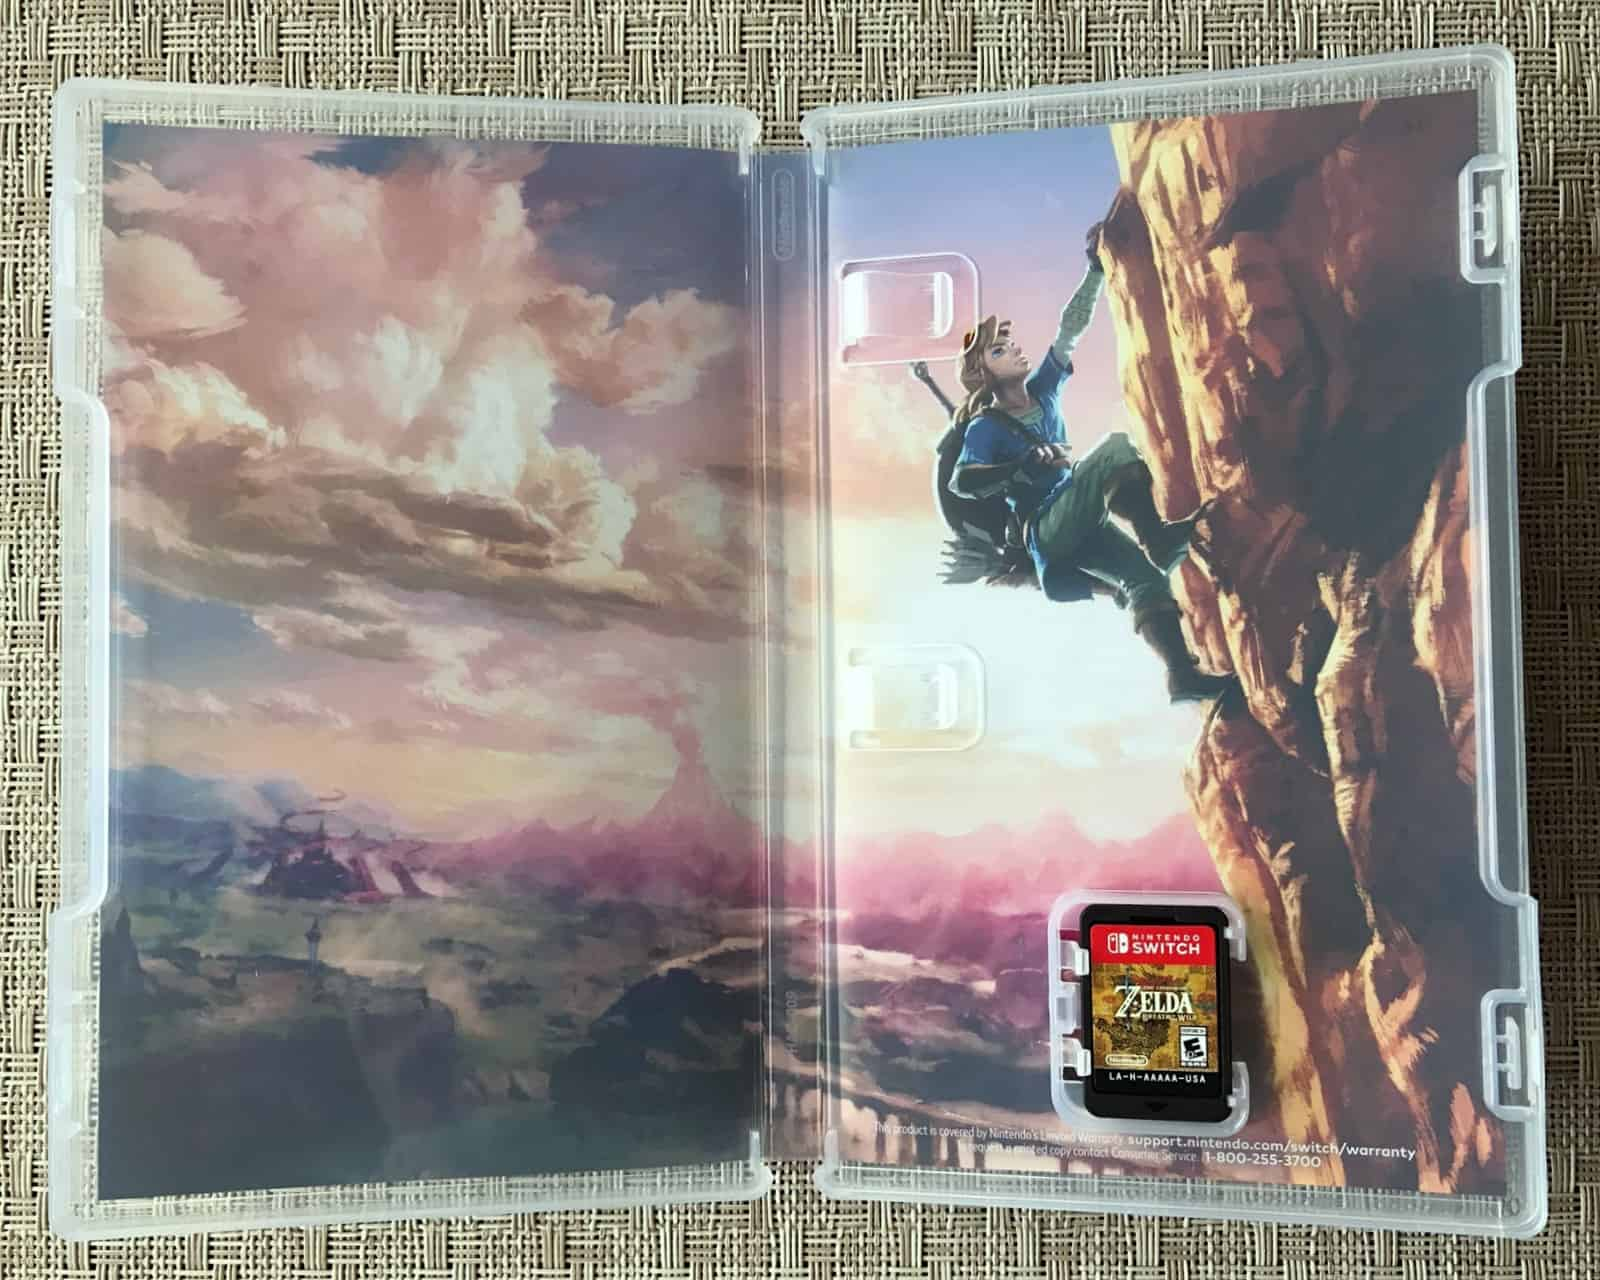 Zelda-BotW-Cartridge-Packaging-Inside.jp